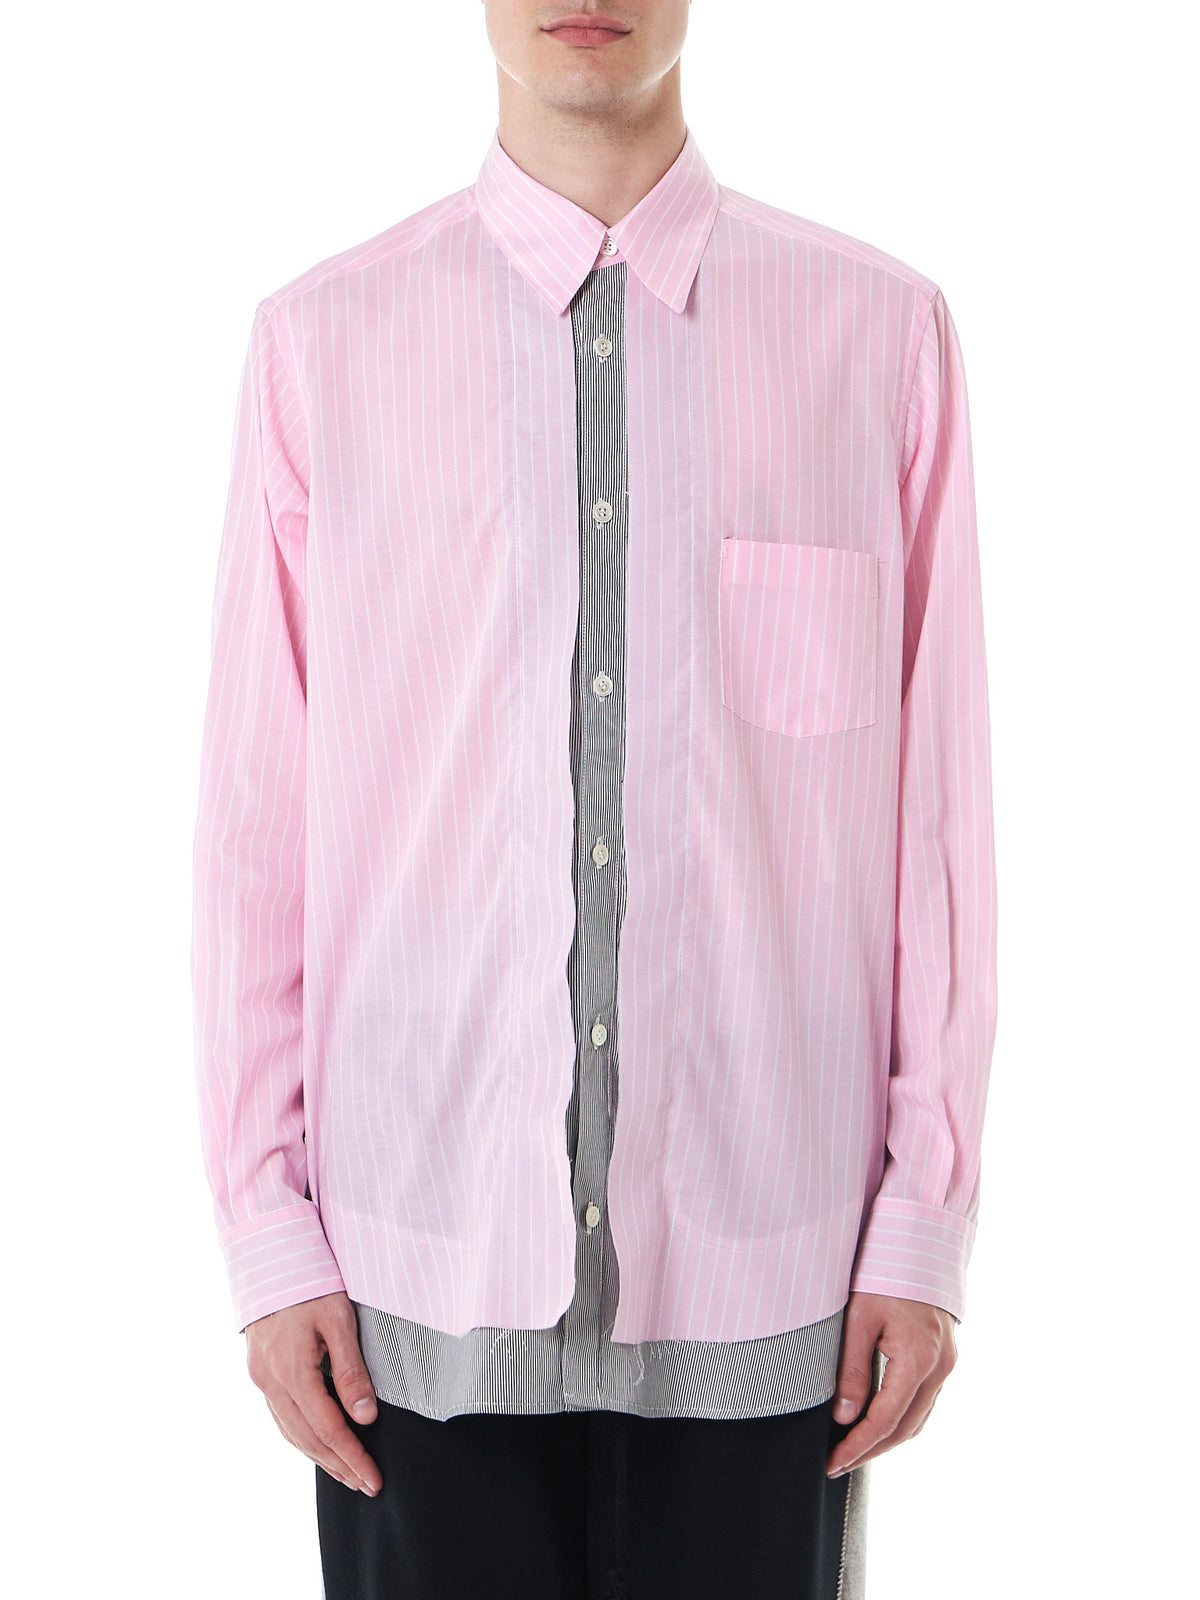 Double-Layered Button-Down (17TMB12005-PINK-CHARCOAL) - H. Lorenzo